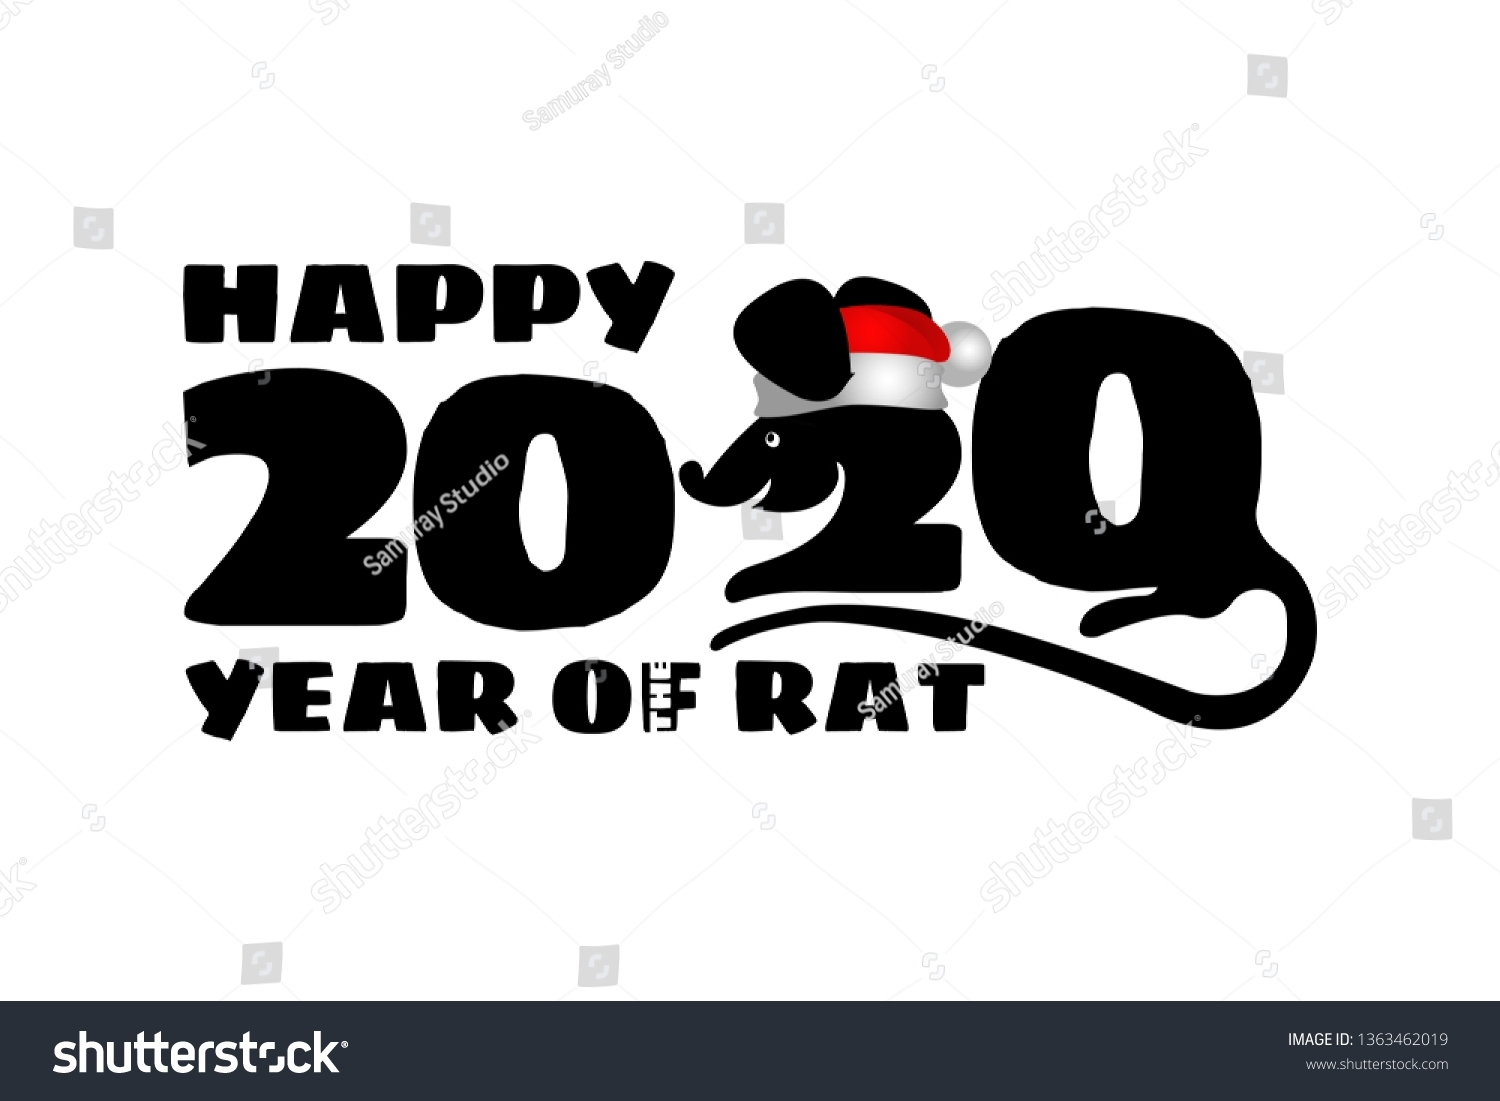 2020 Chinese New Year Rat Calendar Stock Image | Download Now